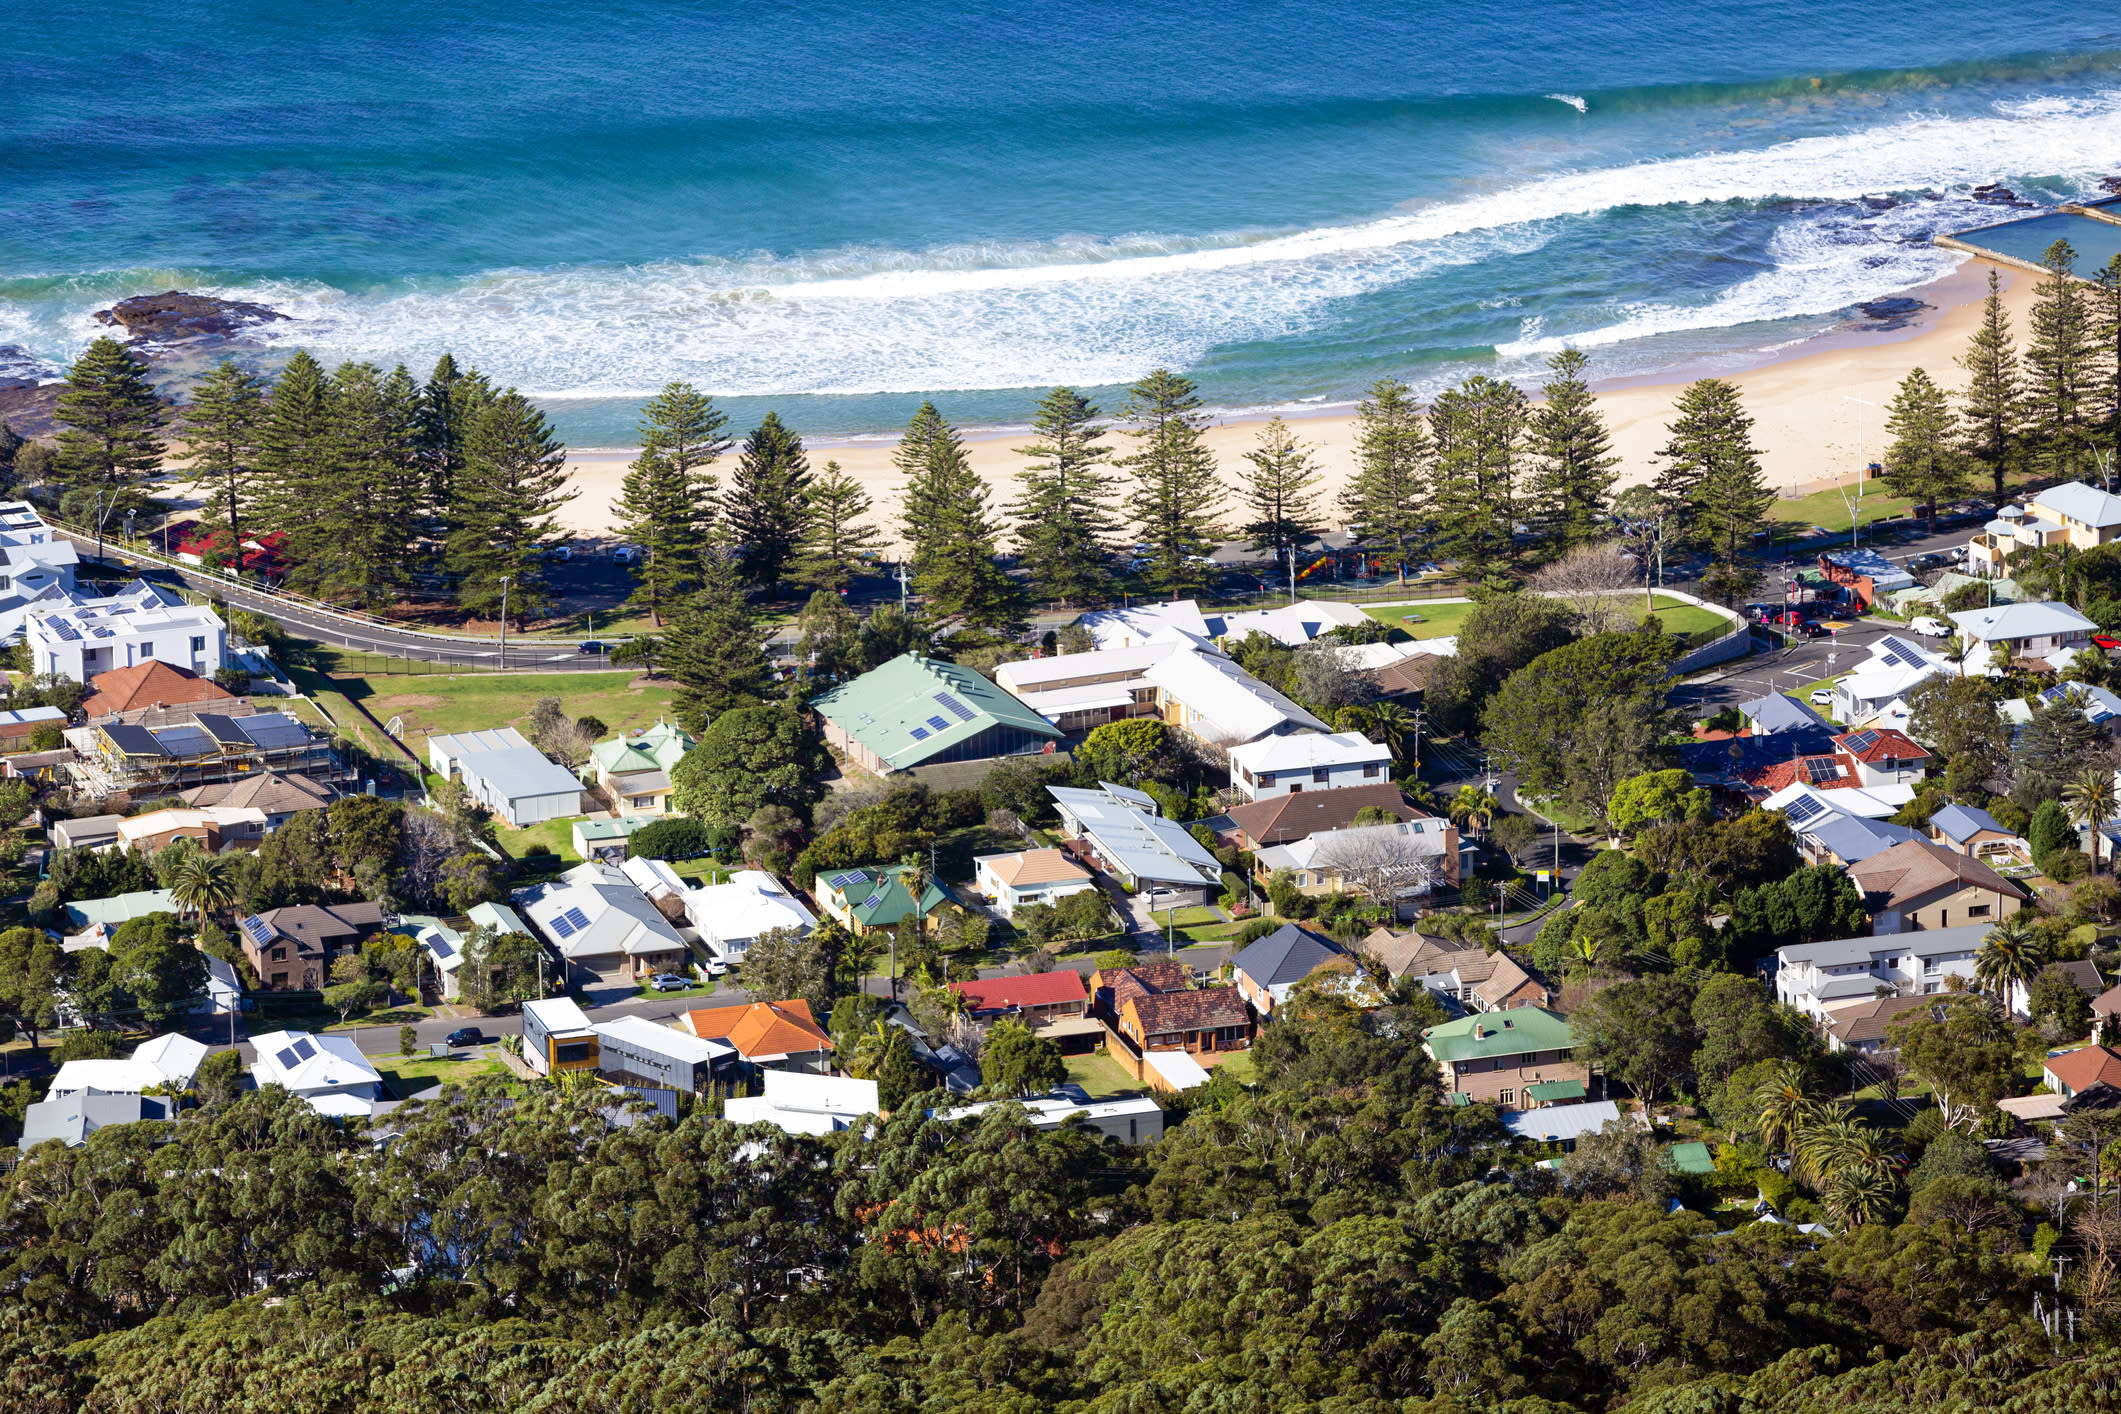 Australia's housing market is 'severely unaffordable'